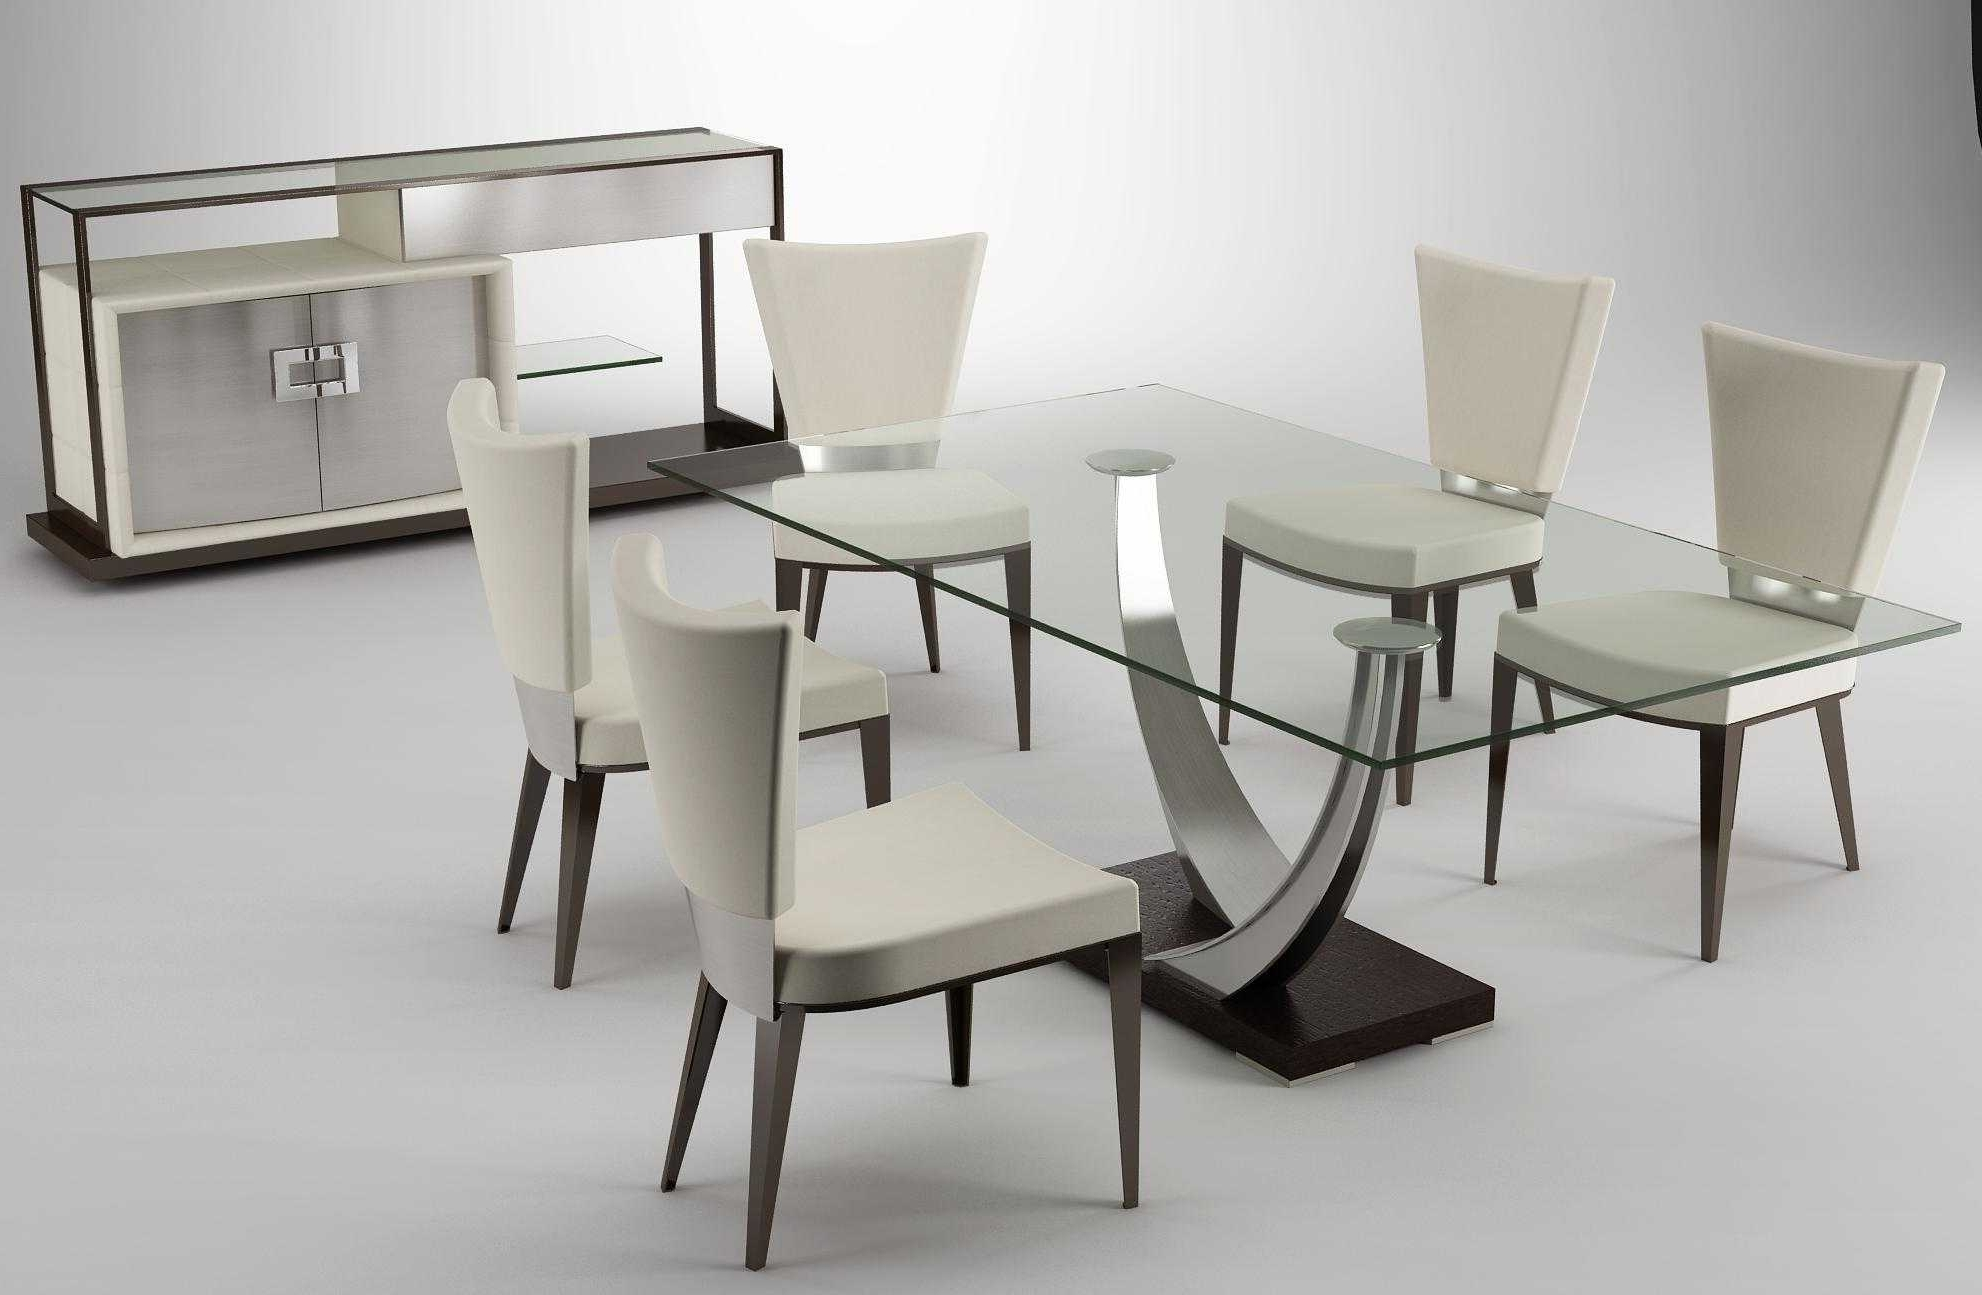 2017 Dining Room Contemporary Nook Dining Set Modern Glass Dining Table Pertaining To Contemporary Dining Room Chairs (View 2 of 25)